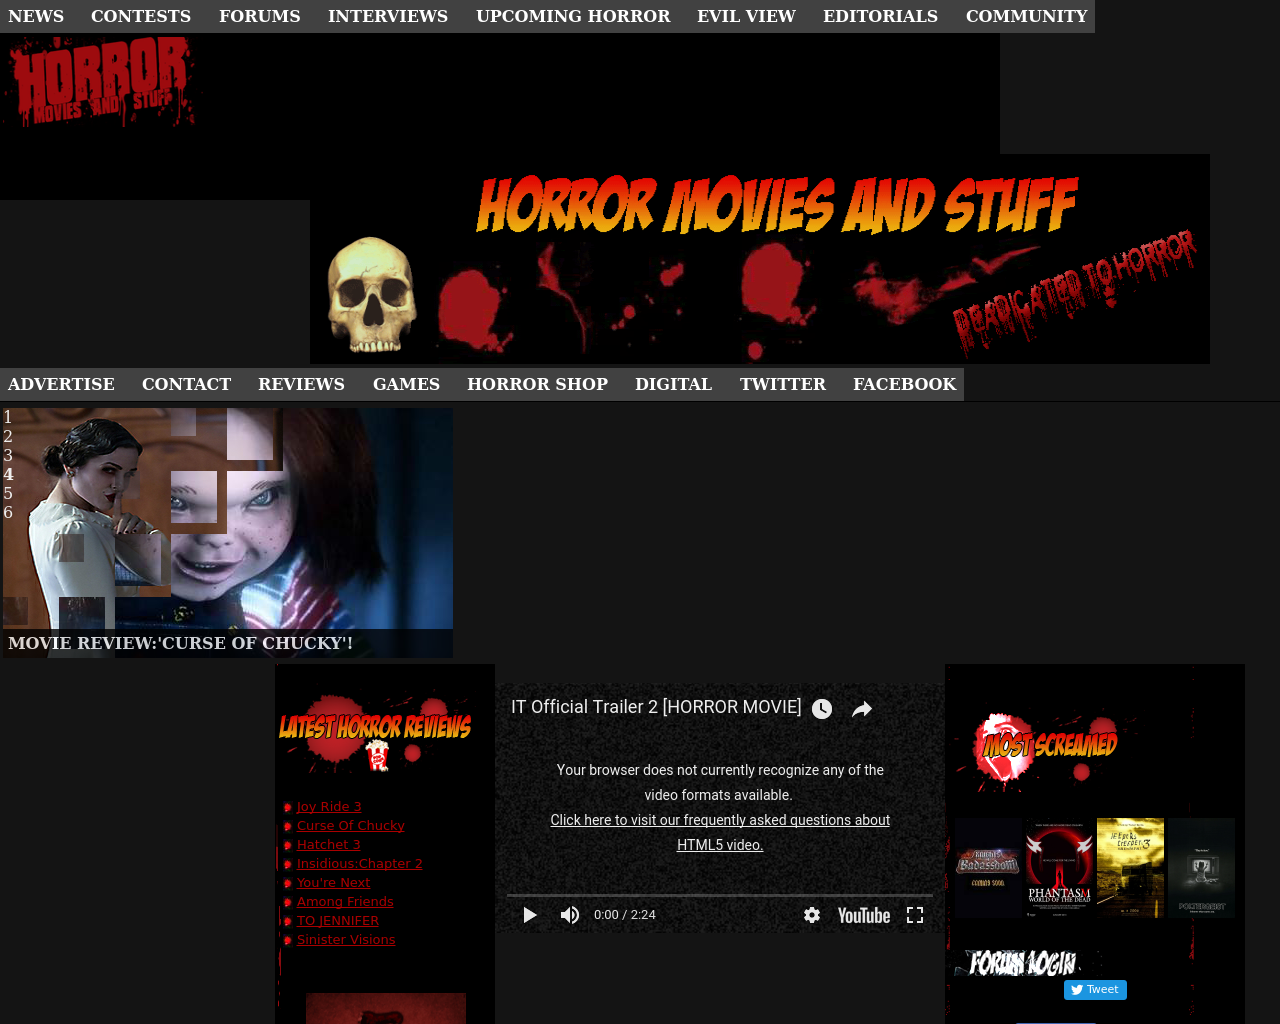 Horror-Movies-And-Stuff-Advertising-Reviews-Pricing